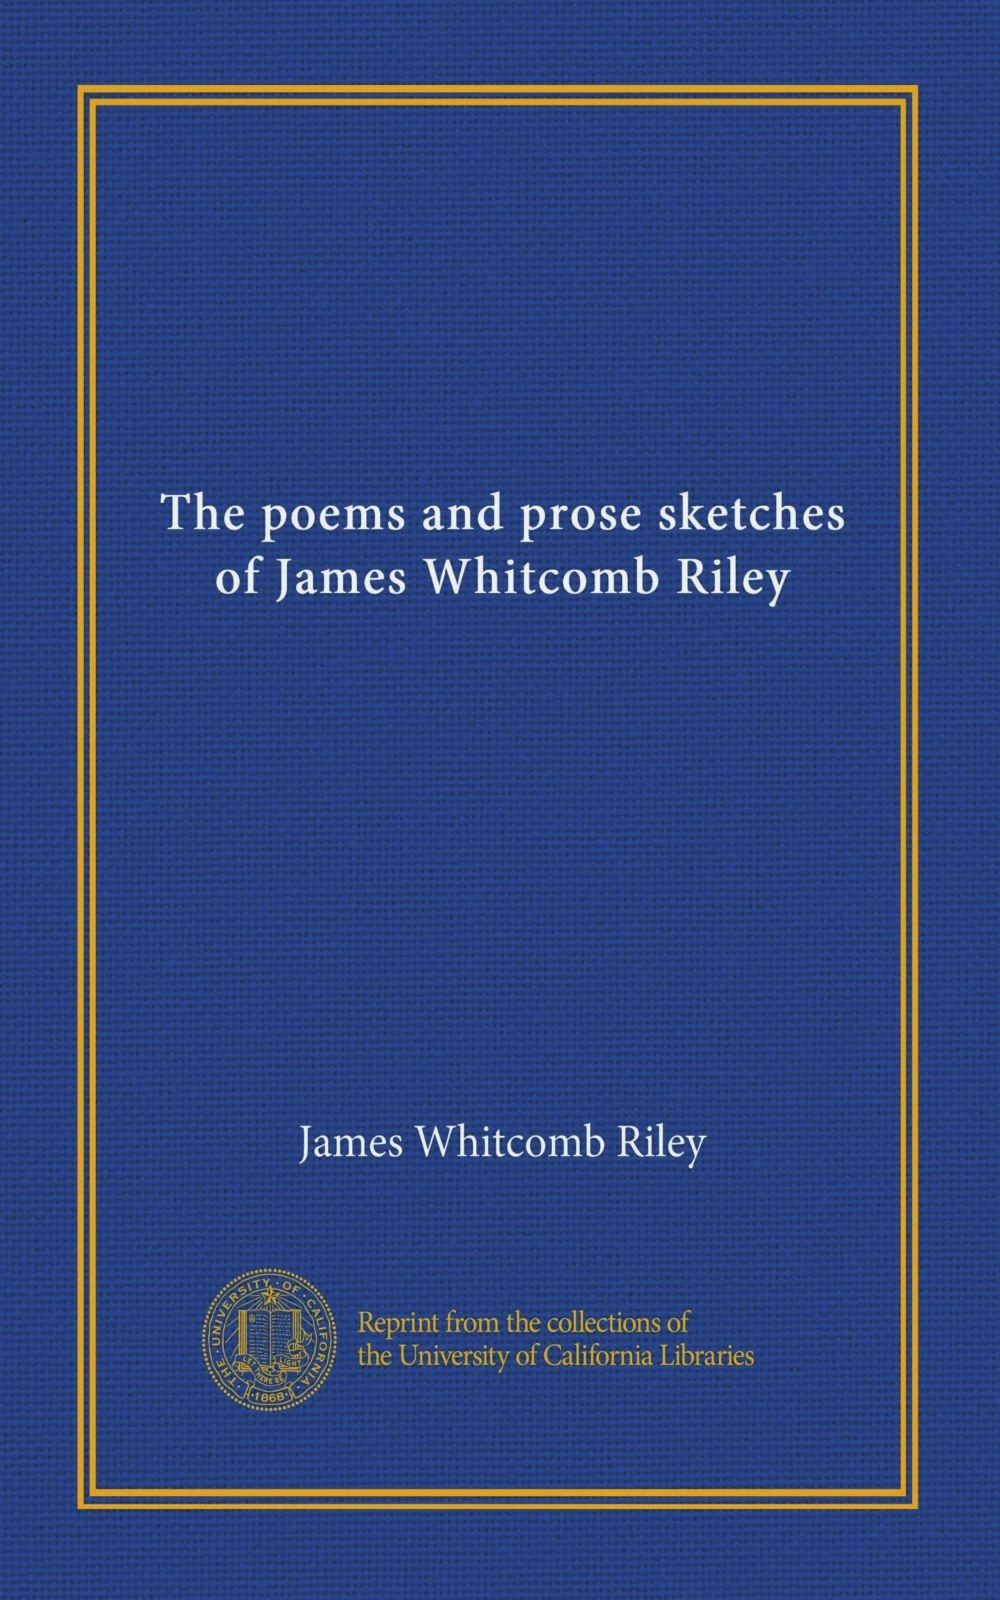 The poems and prose sketches of James Whitcomb Riley (v.03)